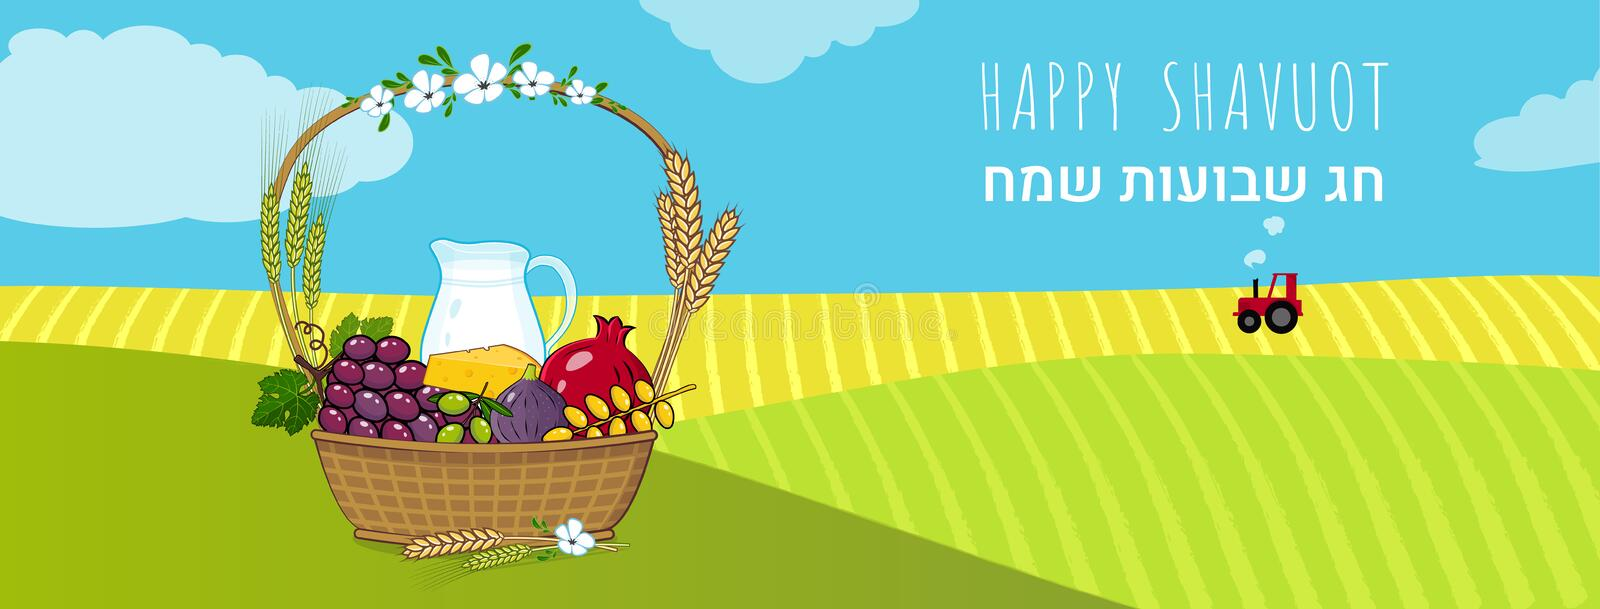 Shavuot Jewish holiday concept with fruits basket Vector illustration. Happy Shavuot in Hebrew. Jewish holiday shavuot concept with traditional fruits basket and royalty free illustration